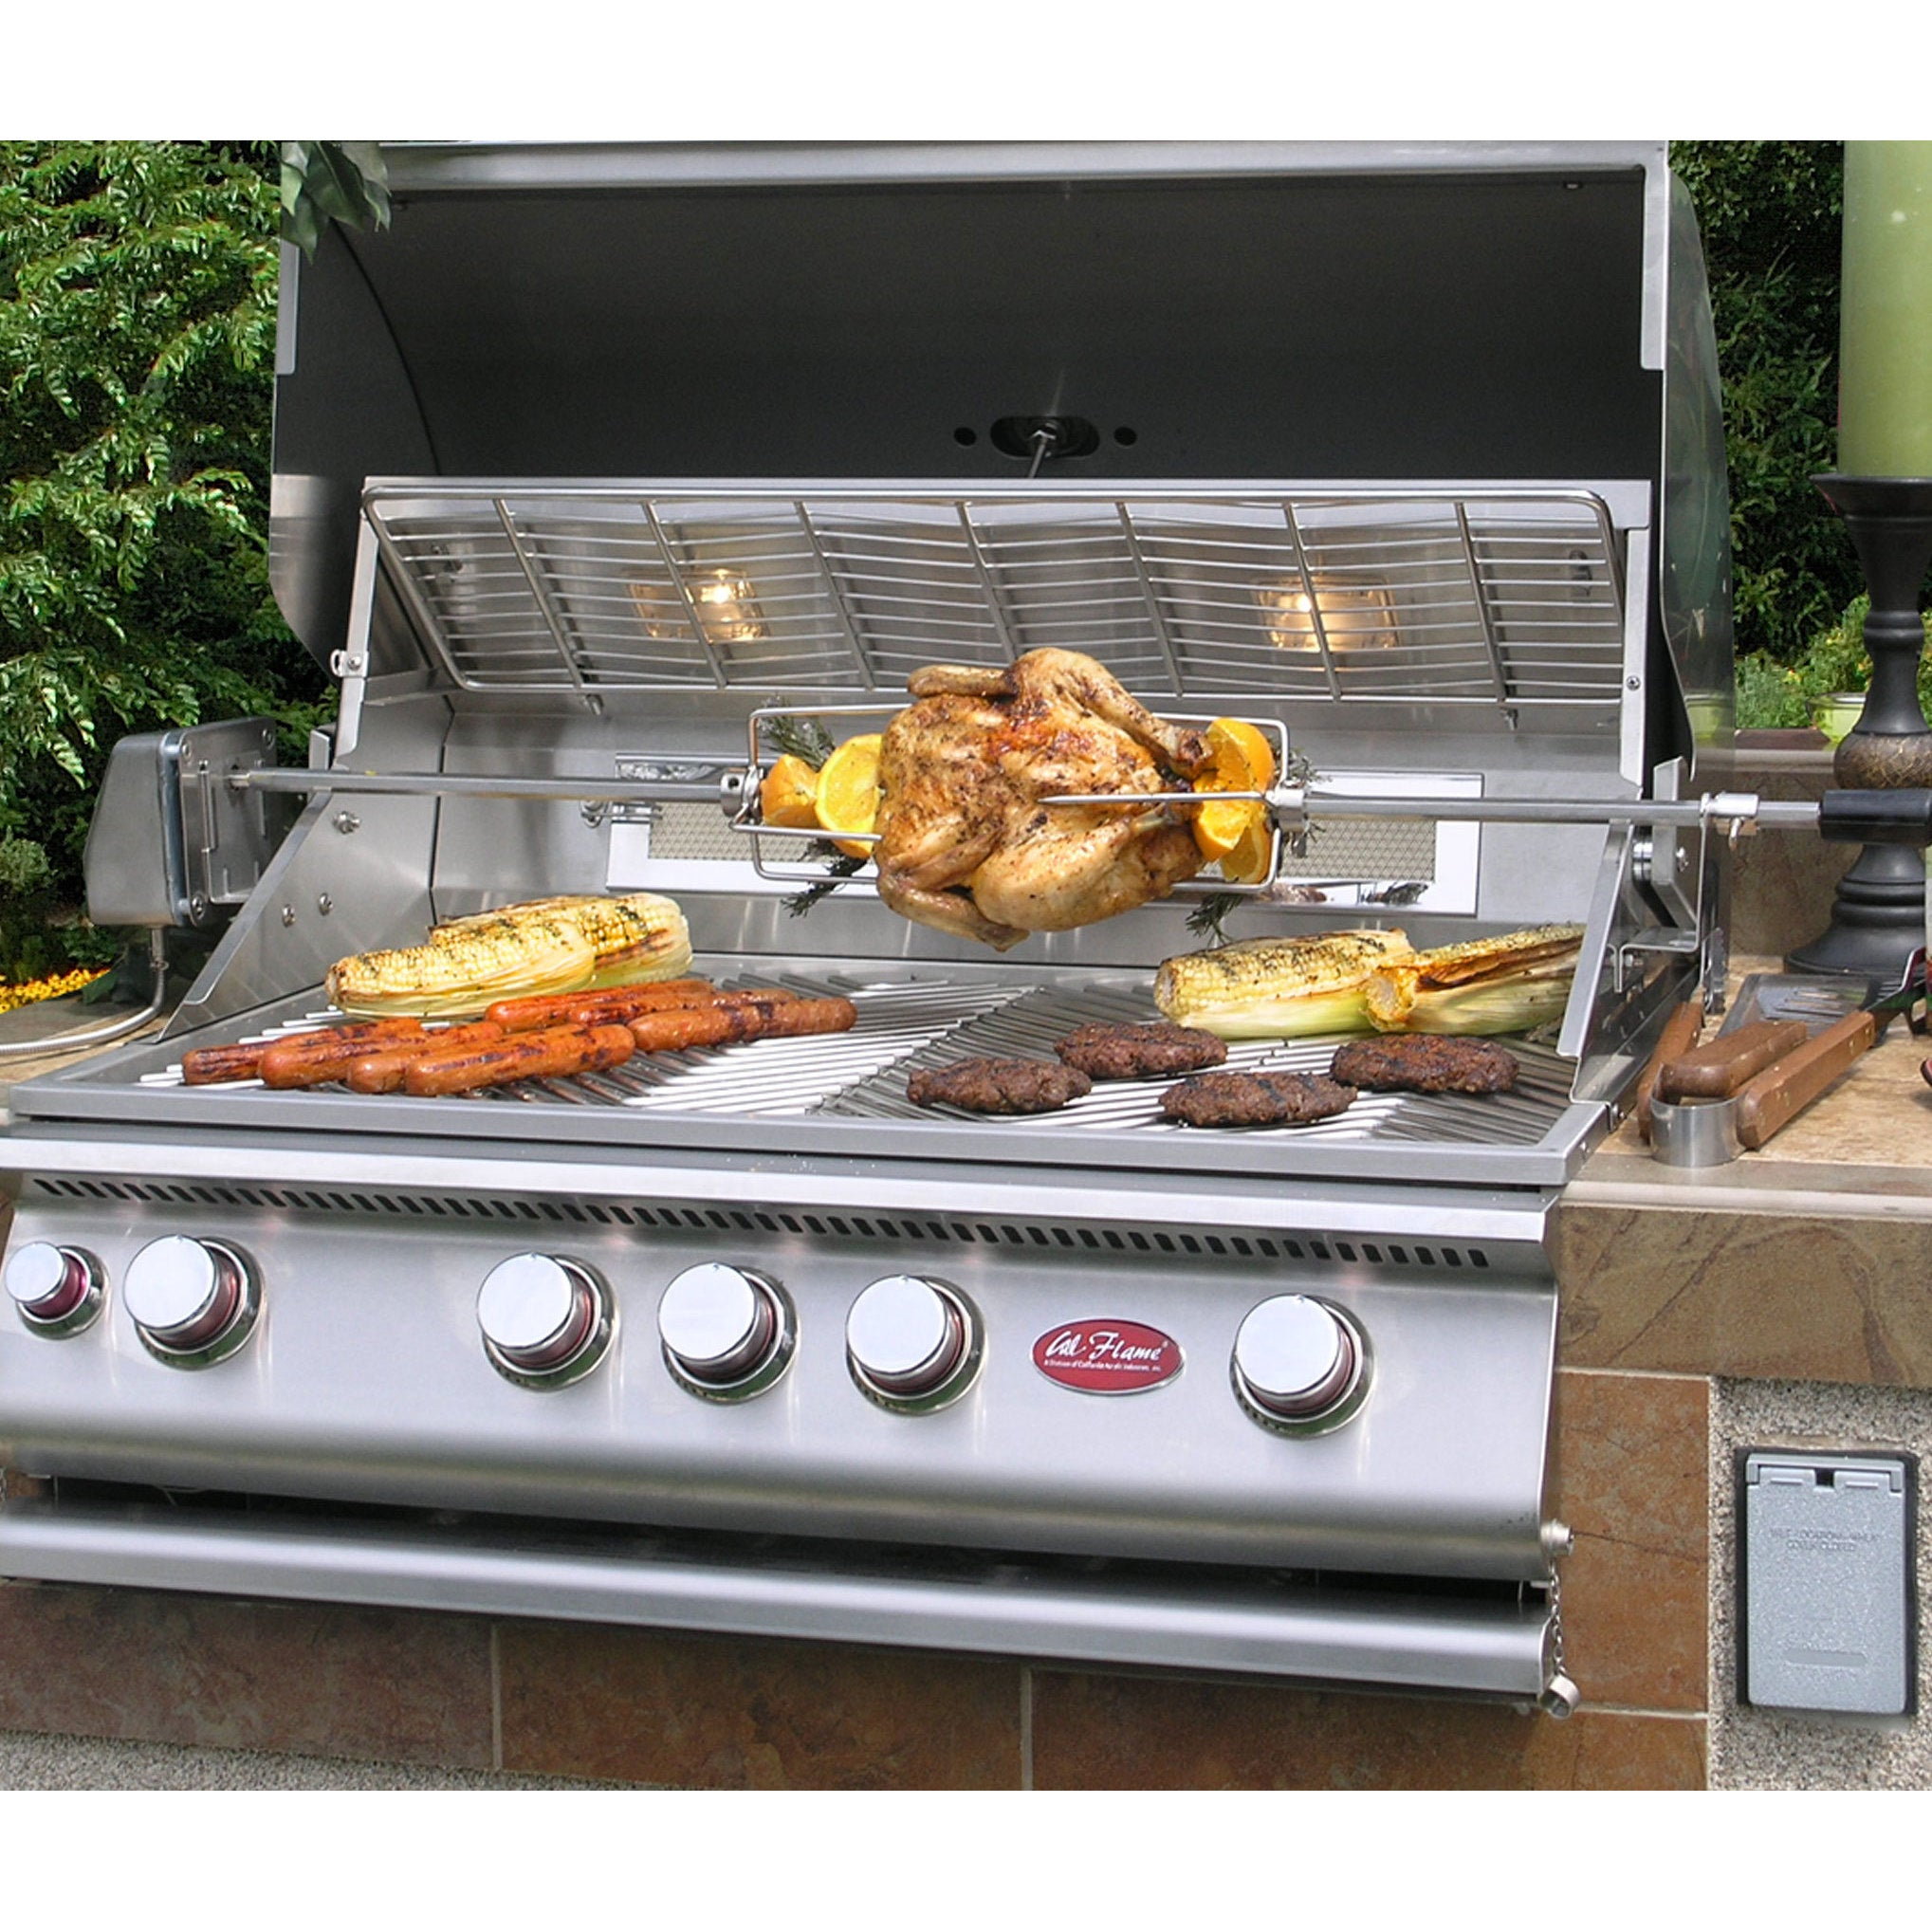 Cal Flame Outdoor Kitchen 4 Burner Barbecue Grill Island With Refrigerator    Free Shipping Today   Overstock.com   17184152